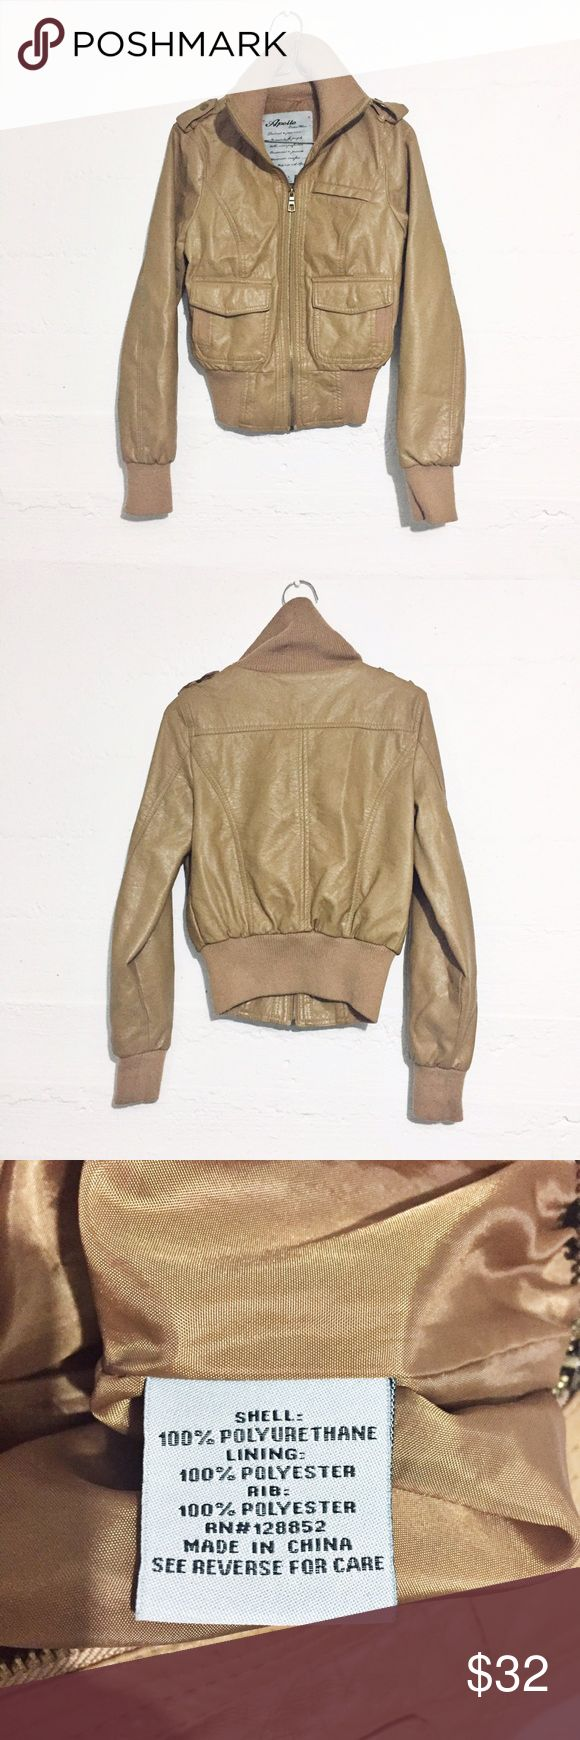 🚨CLEARANCE Aviator Jacket Vegan leather. Amazing quality. Add it to your weekend wardrobe!! No trades. Clearance-price firm. Jackets & Coats